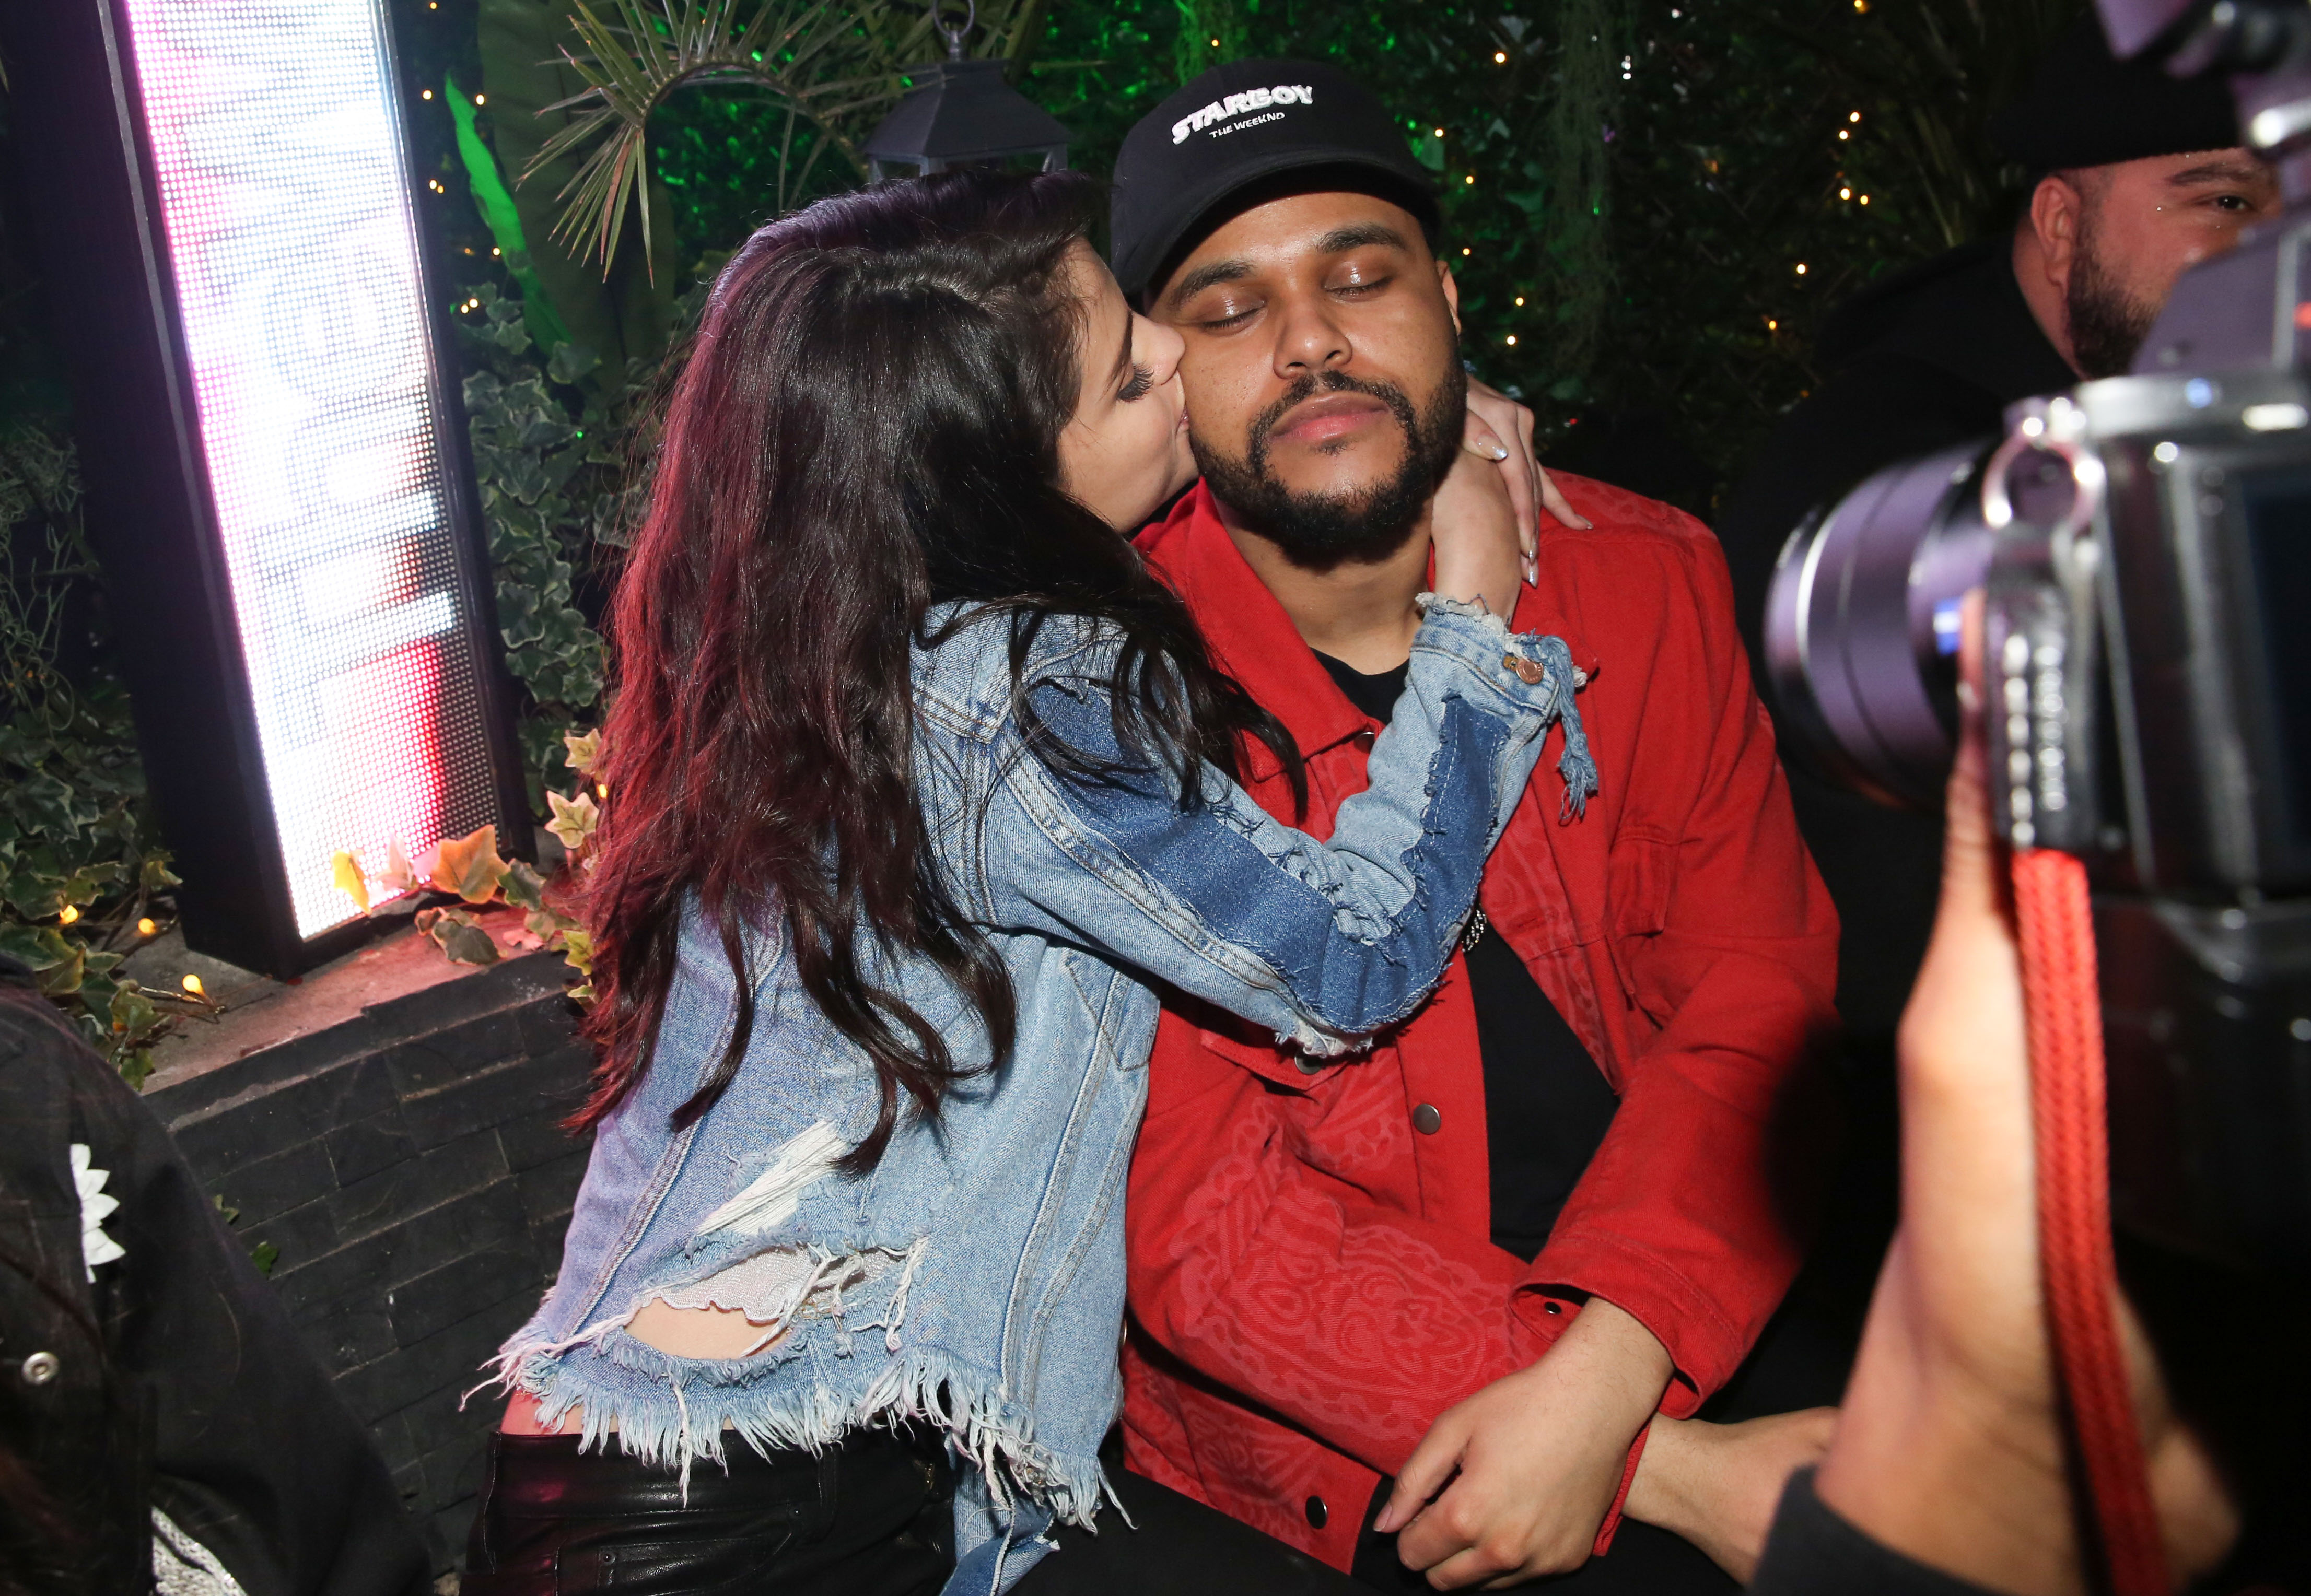 PREMIUM EXCLUSIVE Selena Gomes Plants a Kiss on The Weeknd At After Show Party